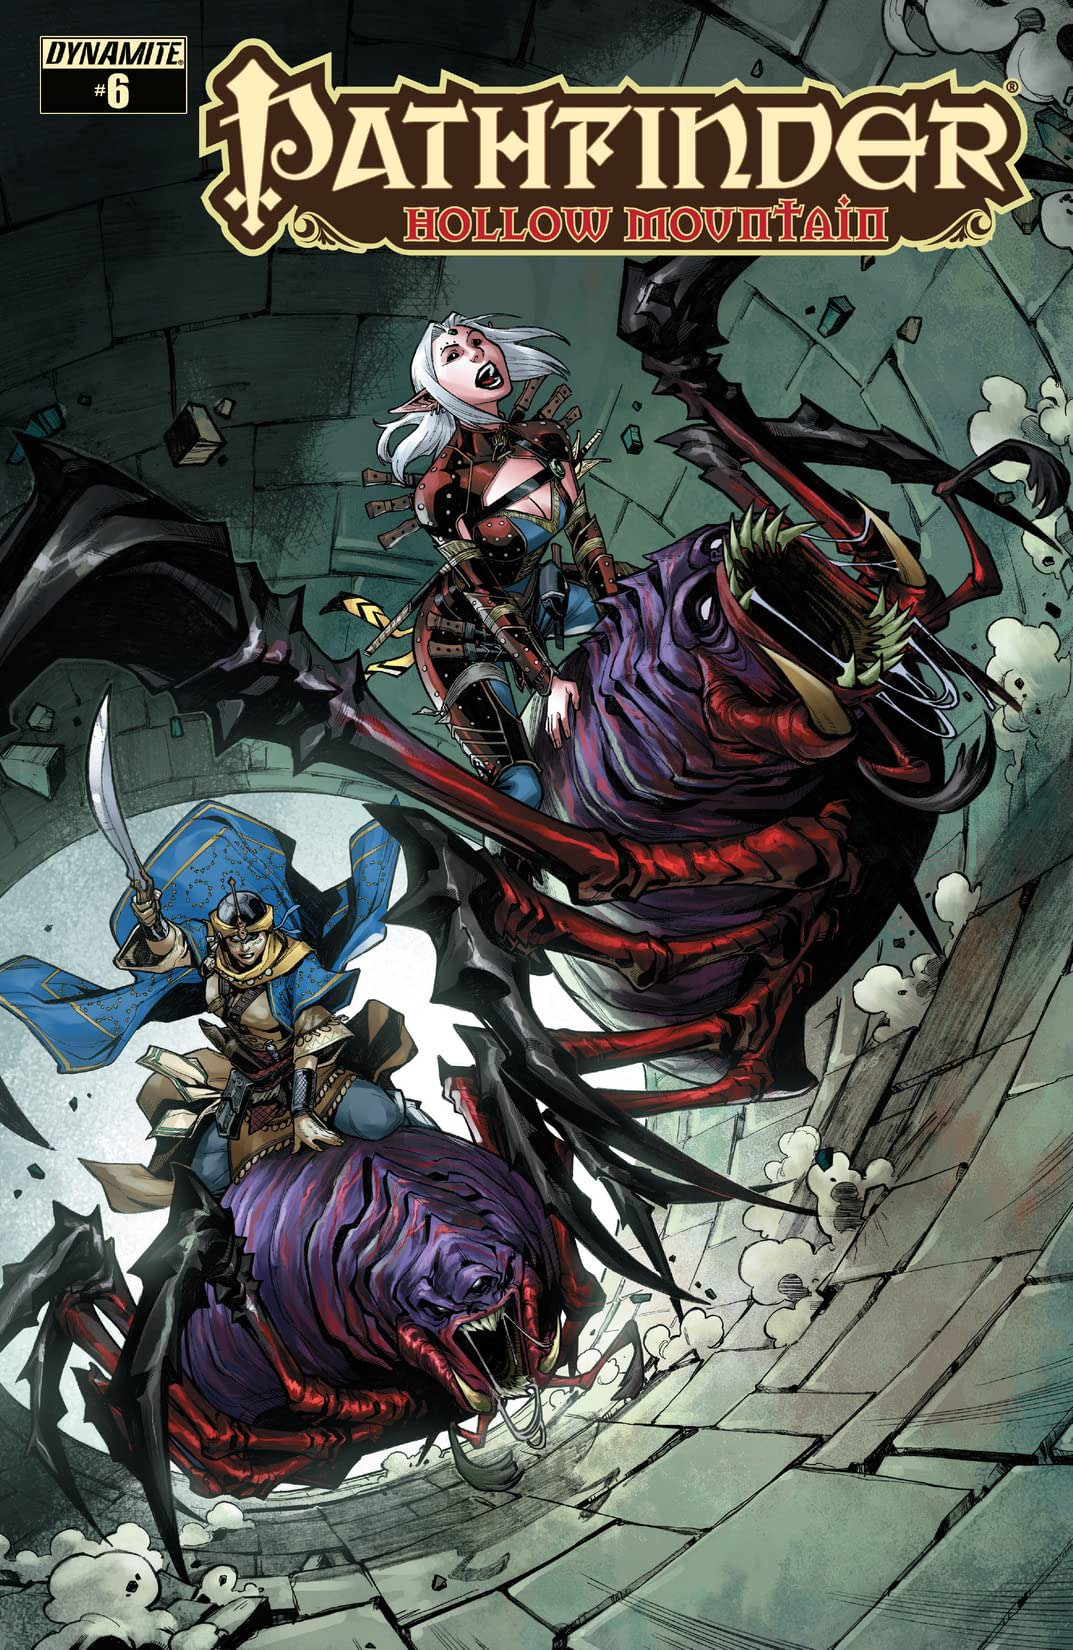 Pathfinder: Hollow Mountain #6 (of 6): Digital Exclusive Edition